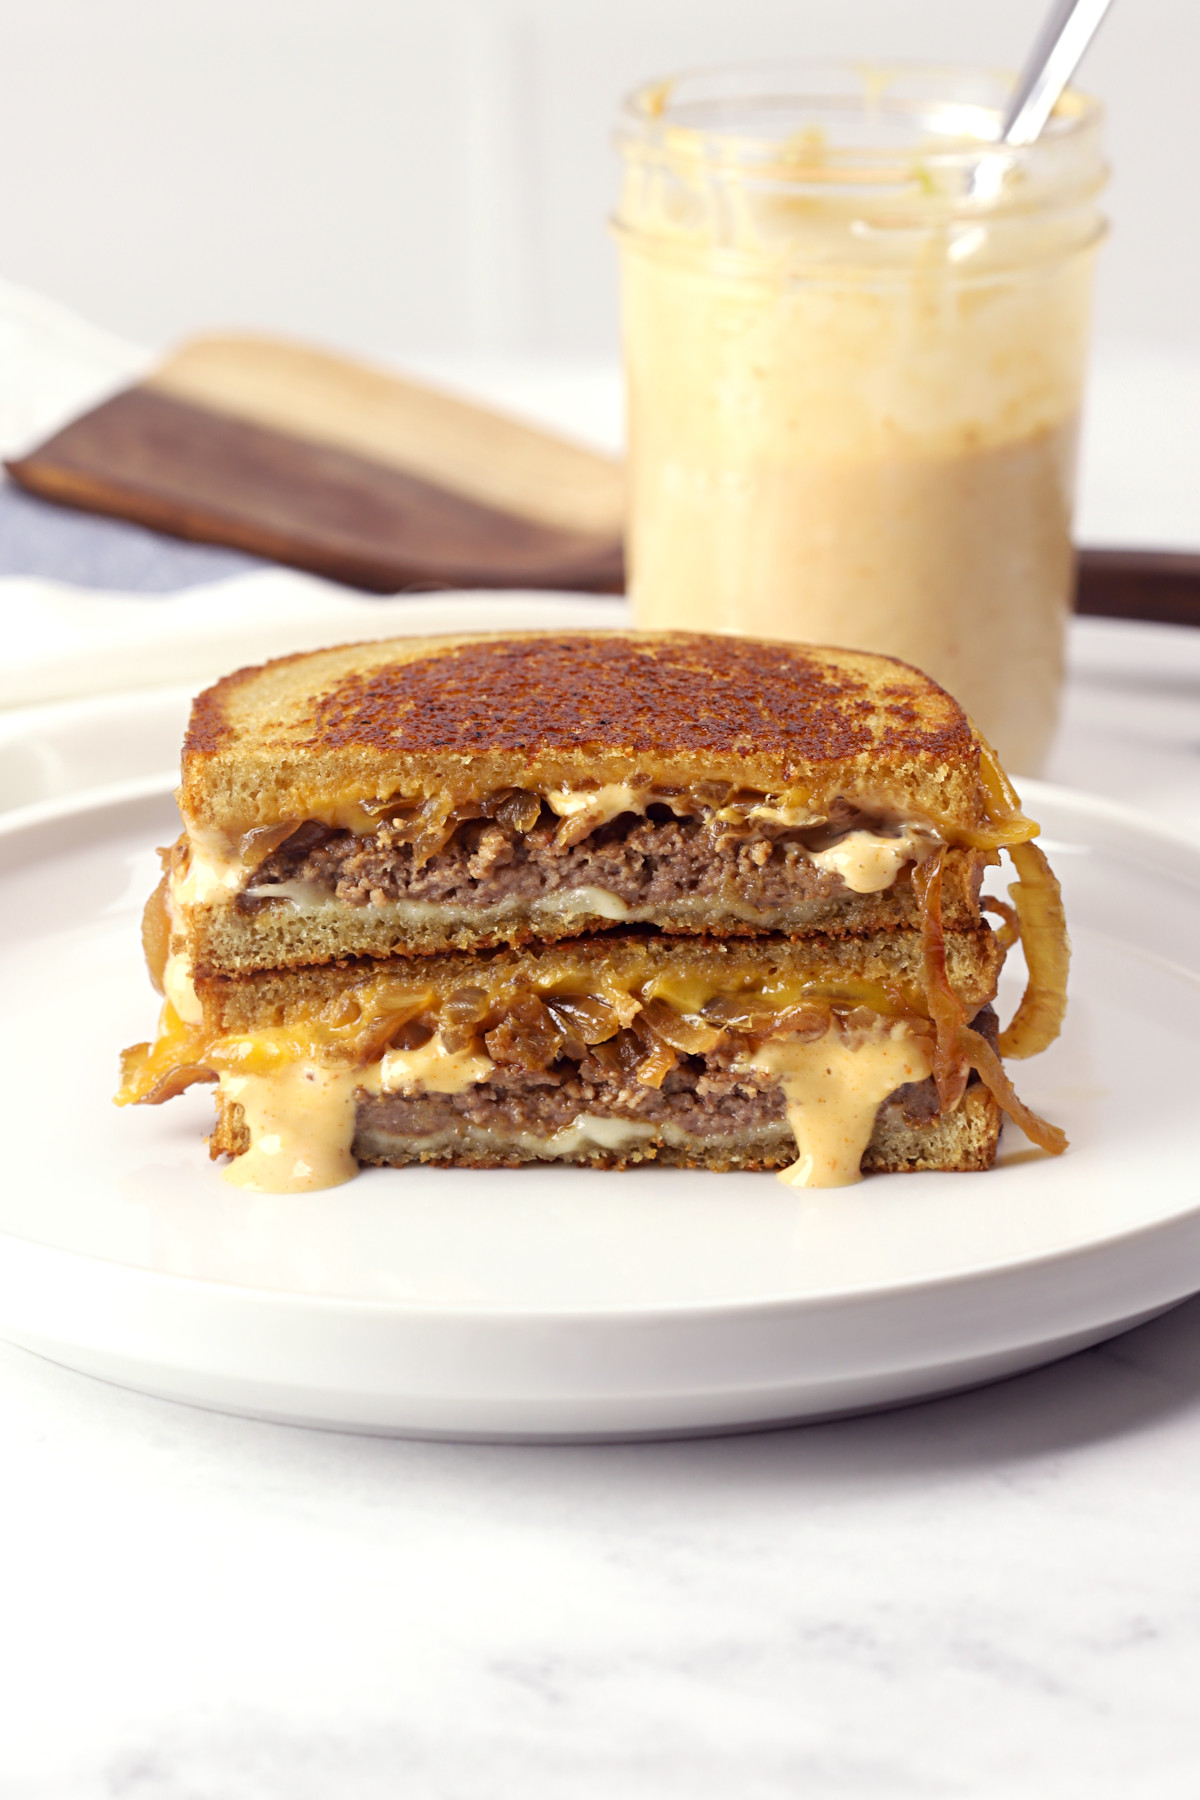 Patty melt sliced in half on a white plate.